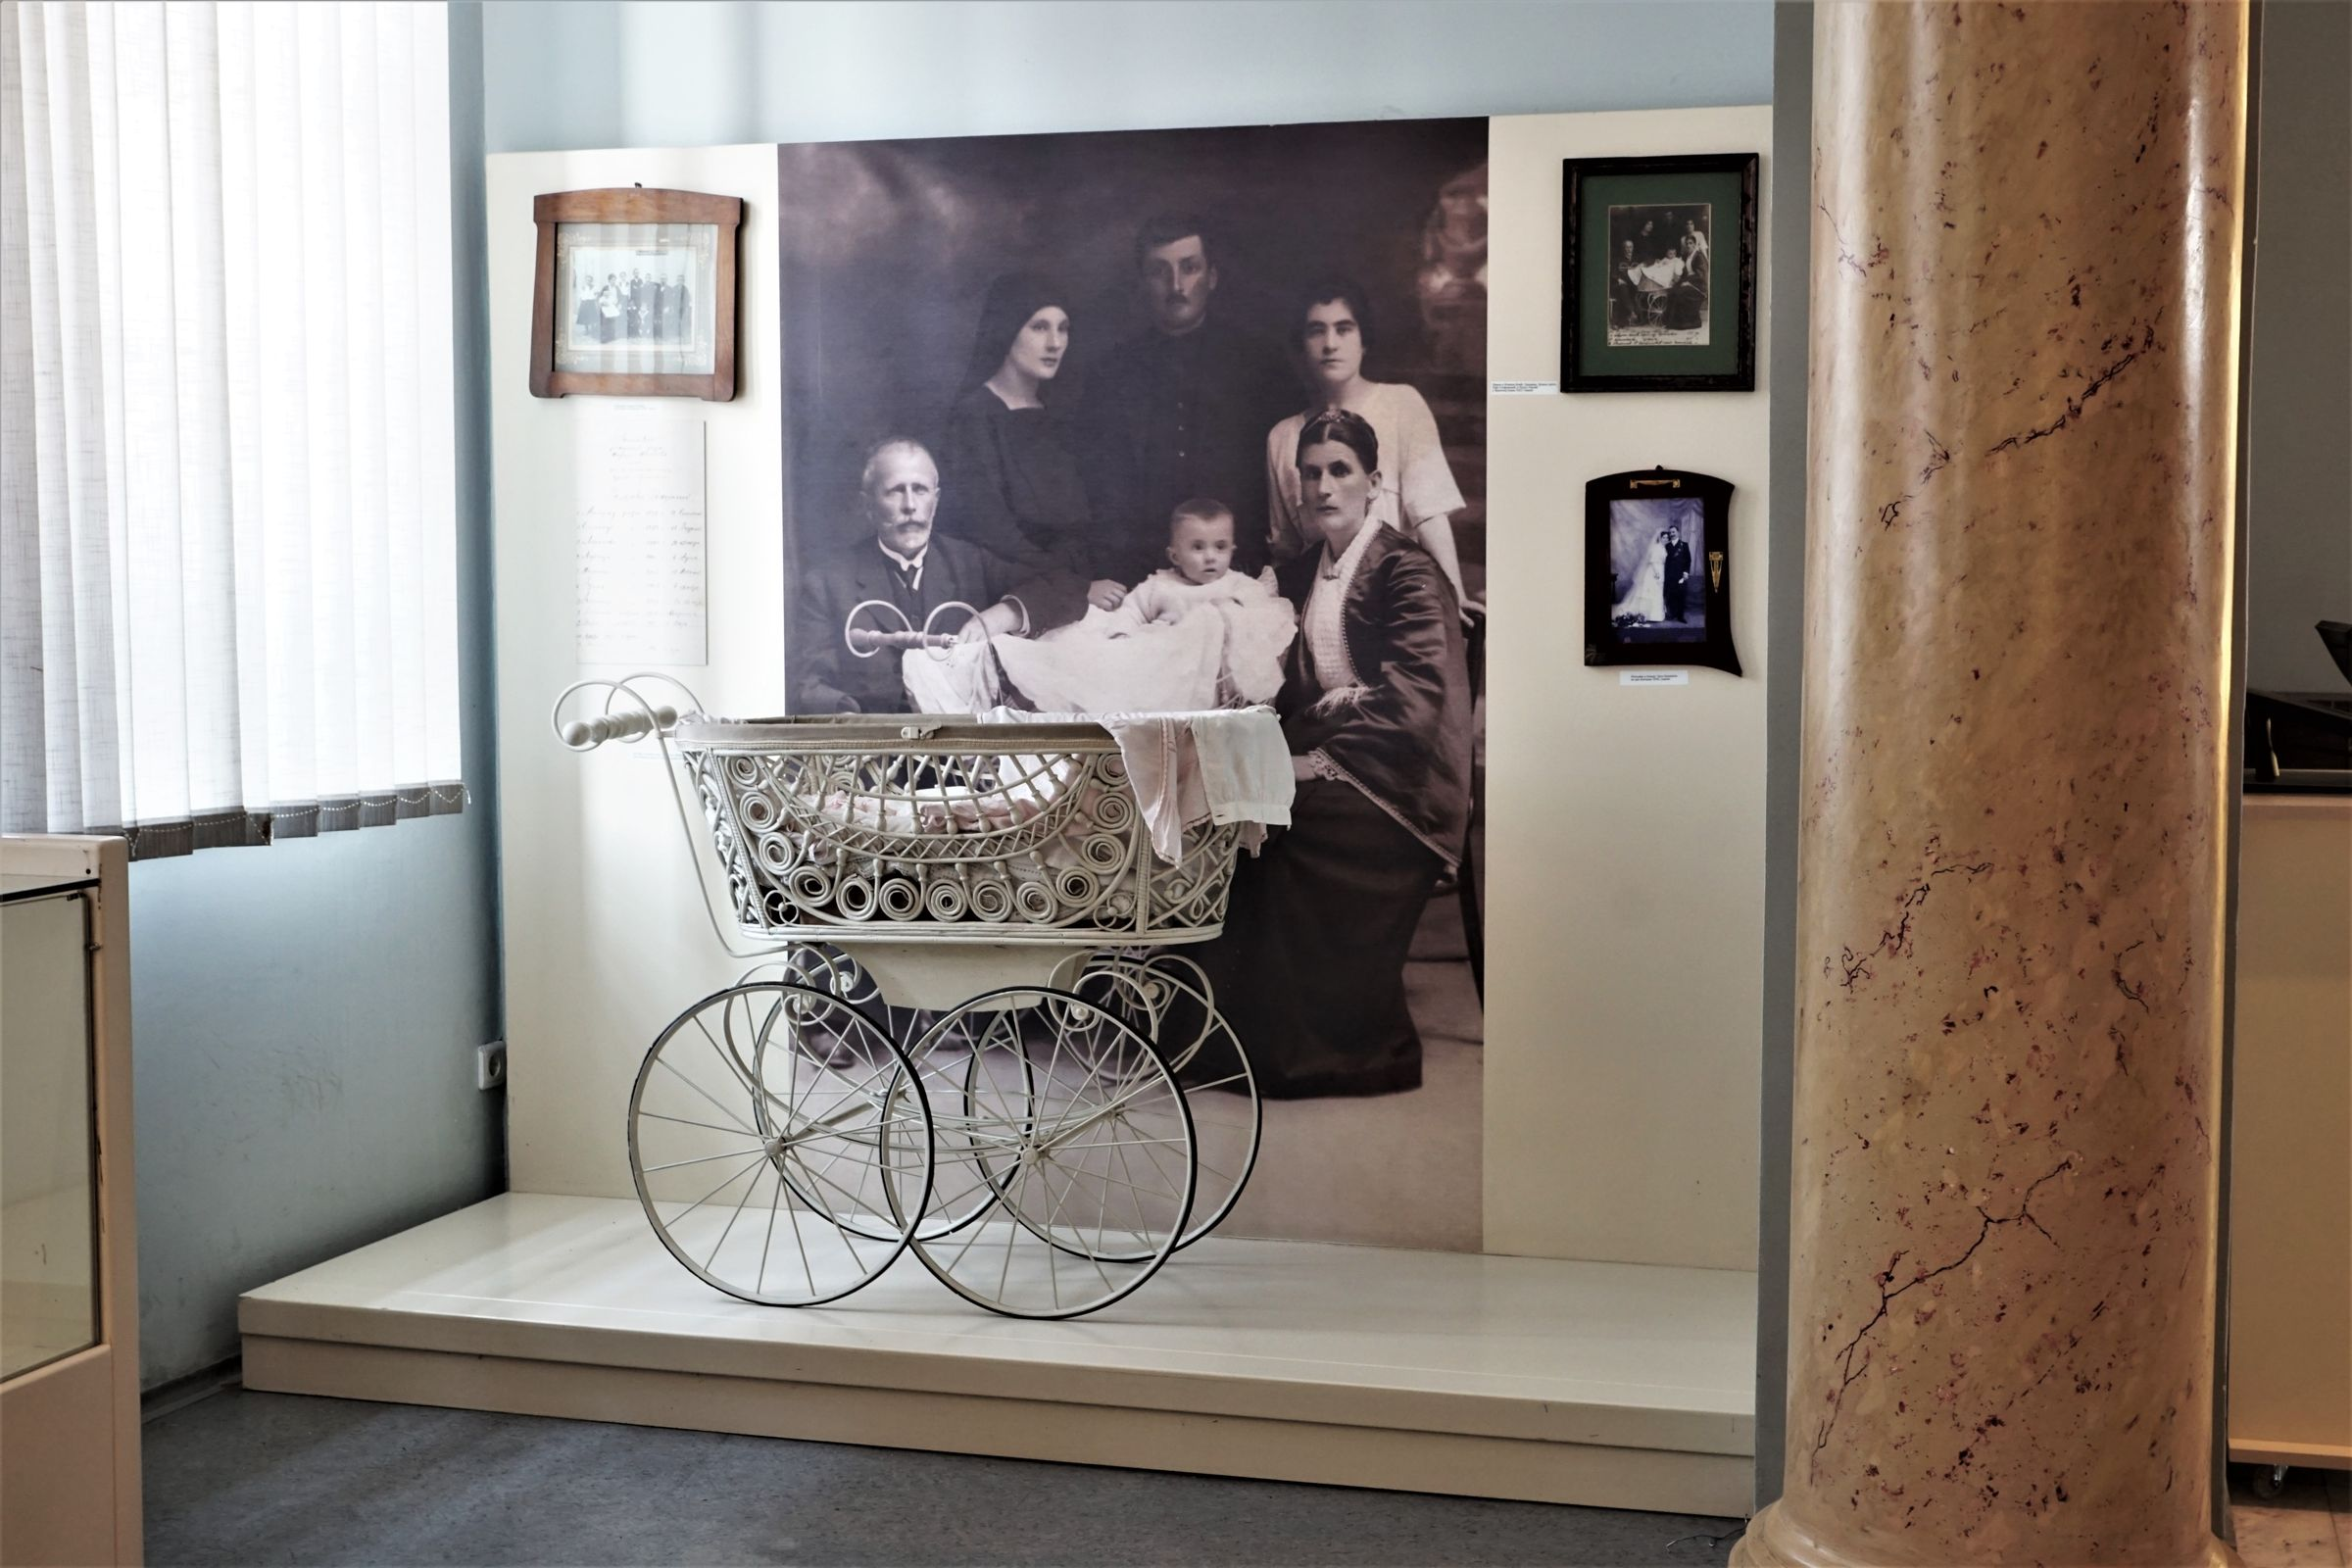 Part dedicated to family life in Kraljevo at the beginning of the 20th century in the Hallway of the Permanent Exhibition